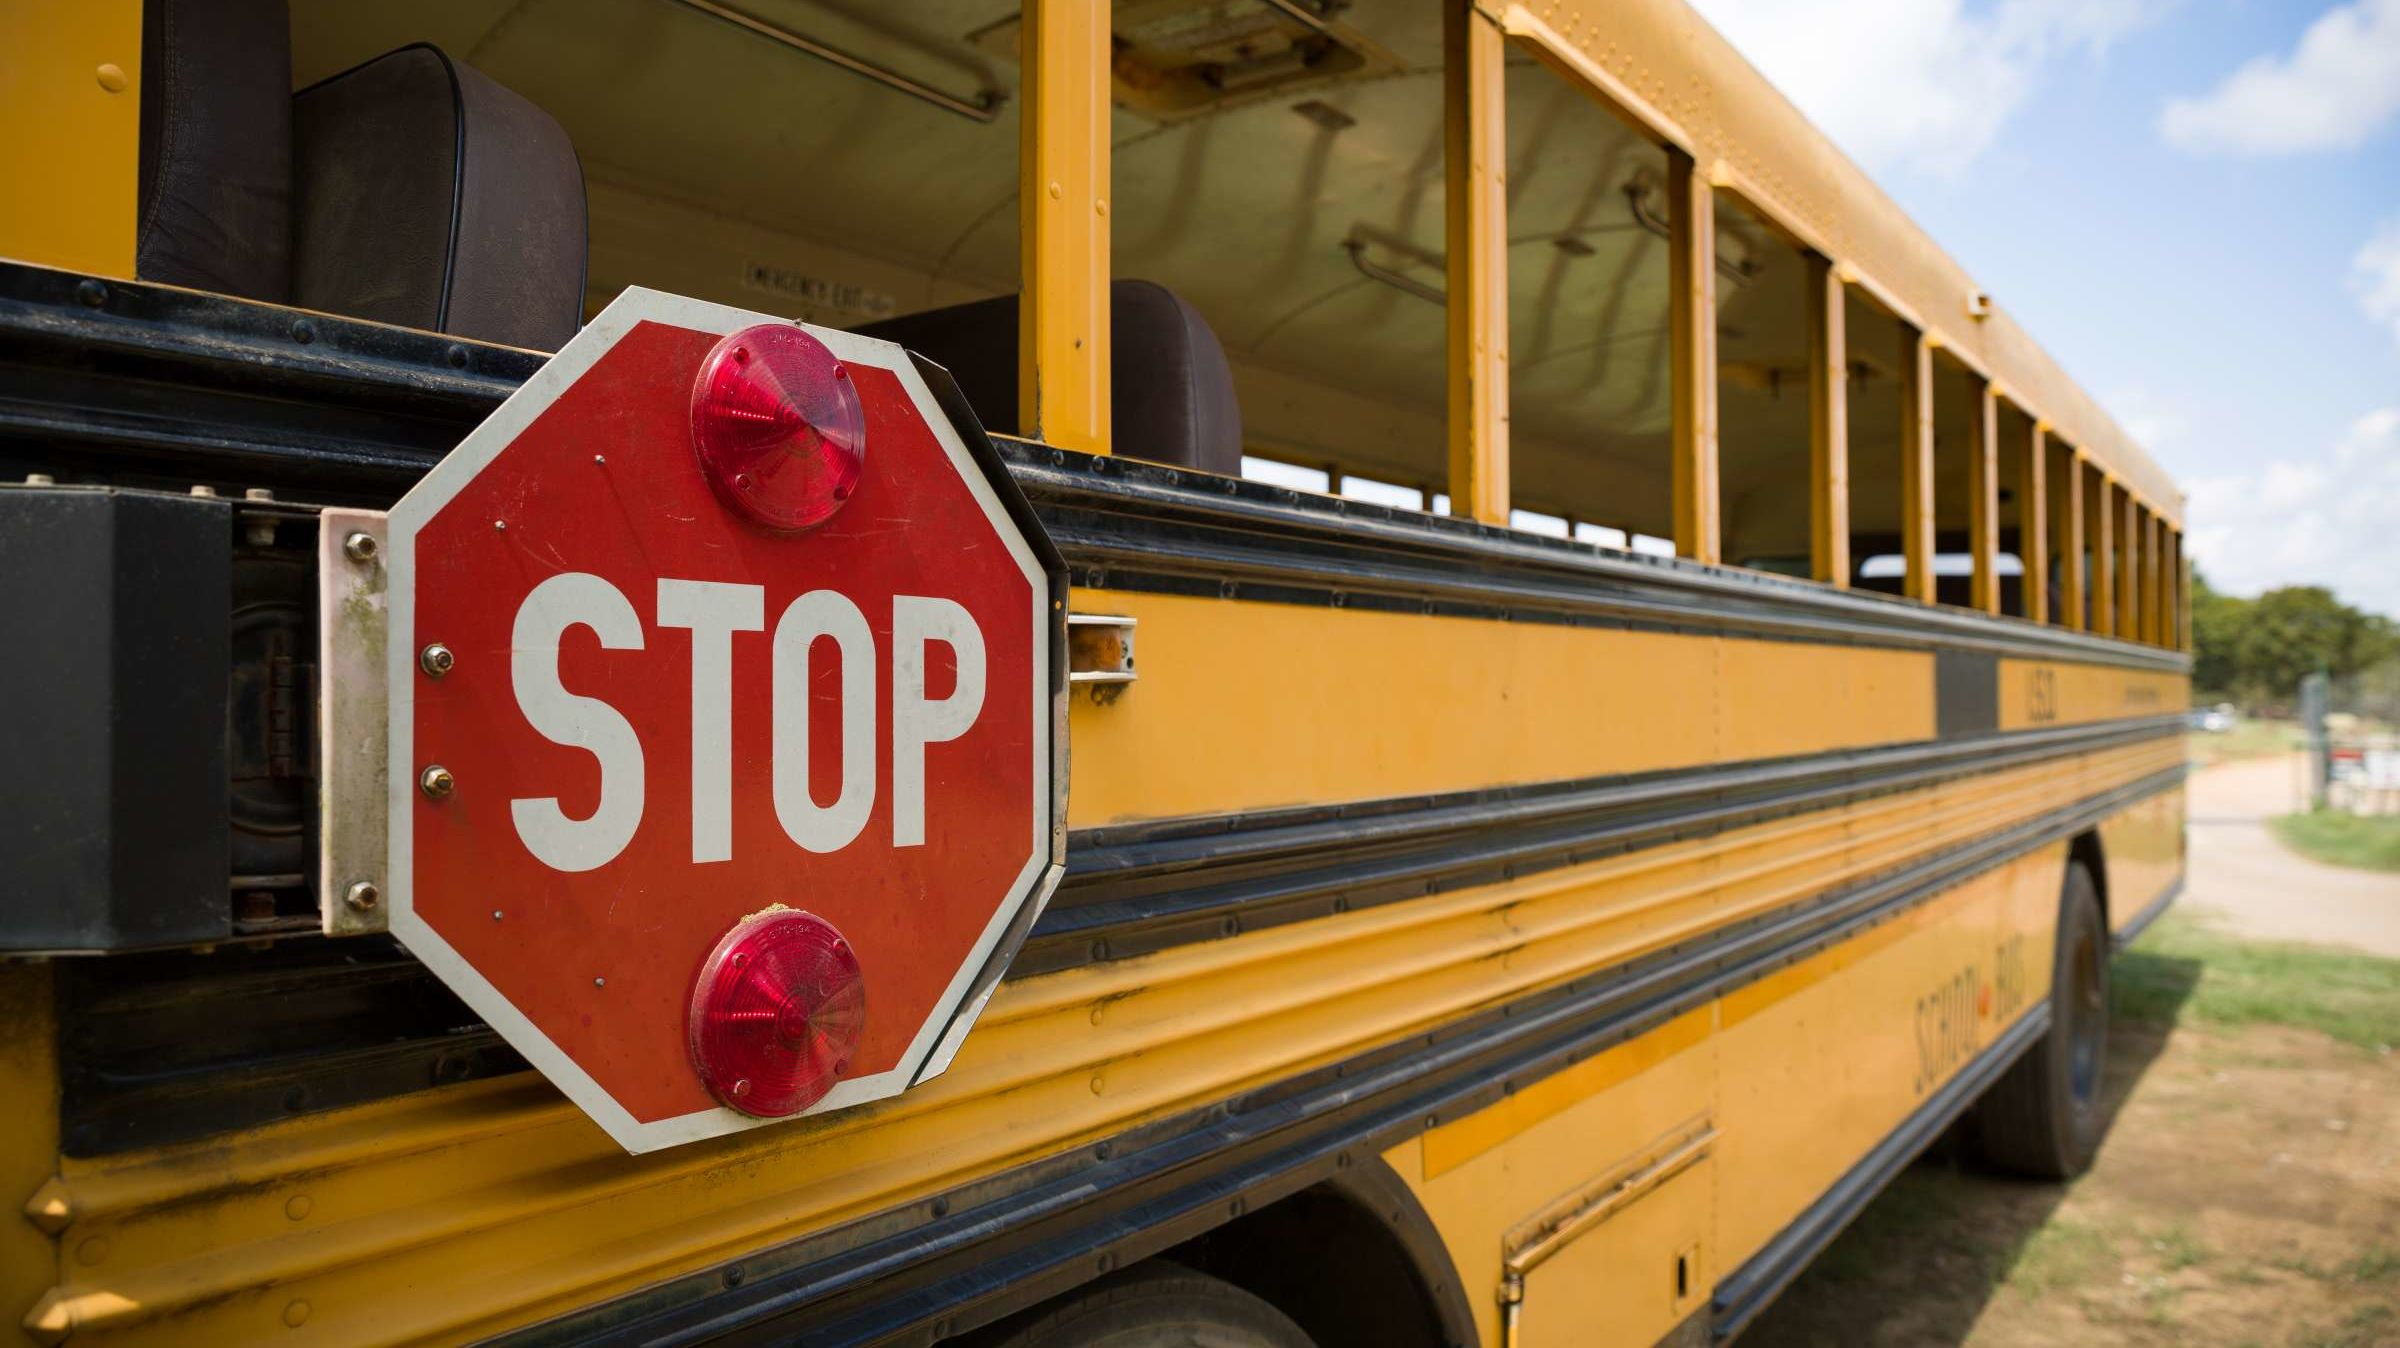 The Clever Reason Behind Those Black Lines on the Sides of School Buses